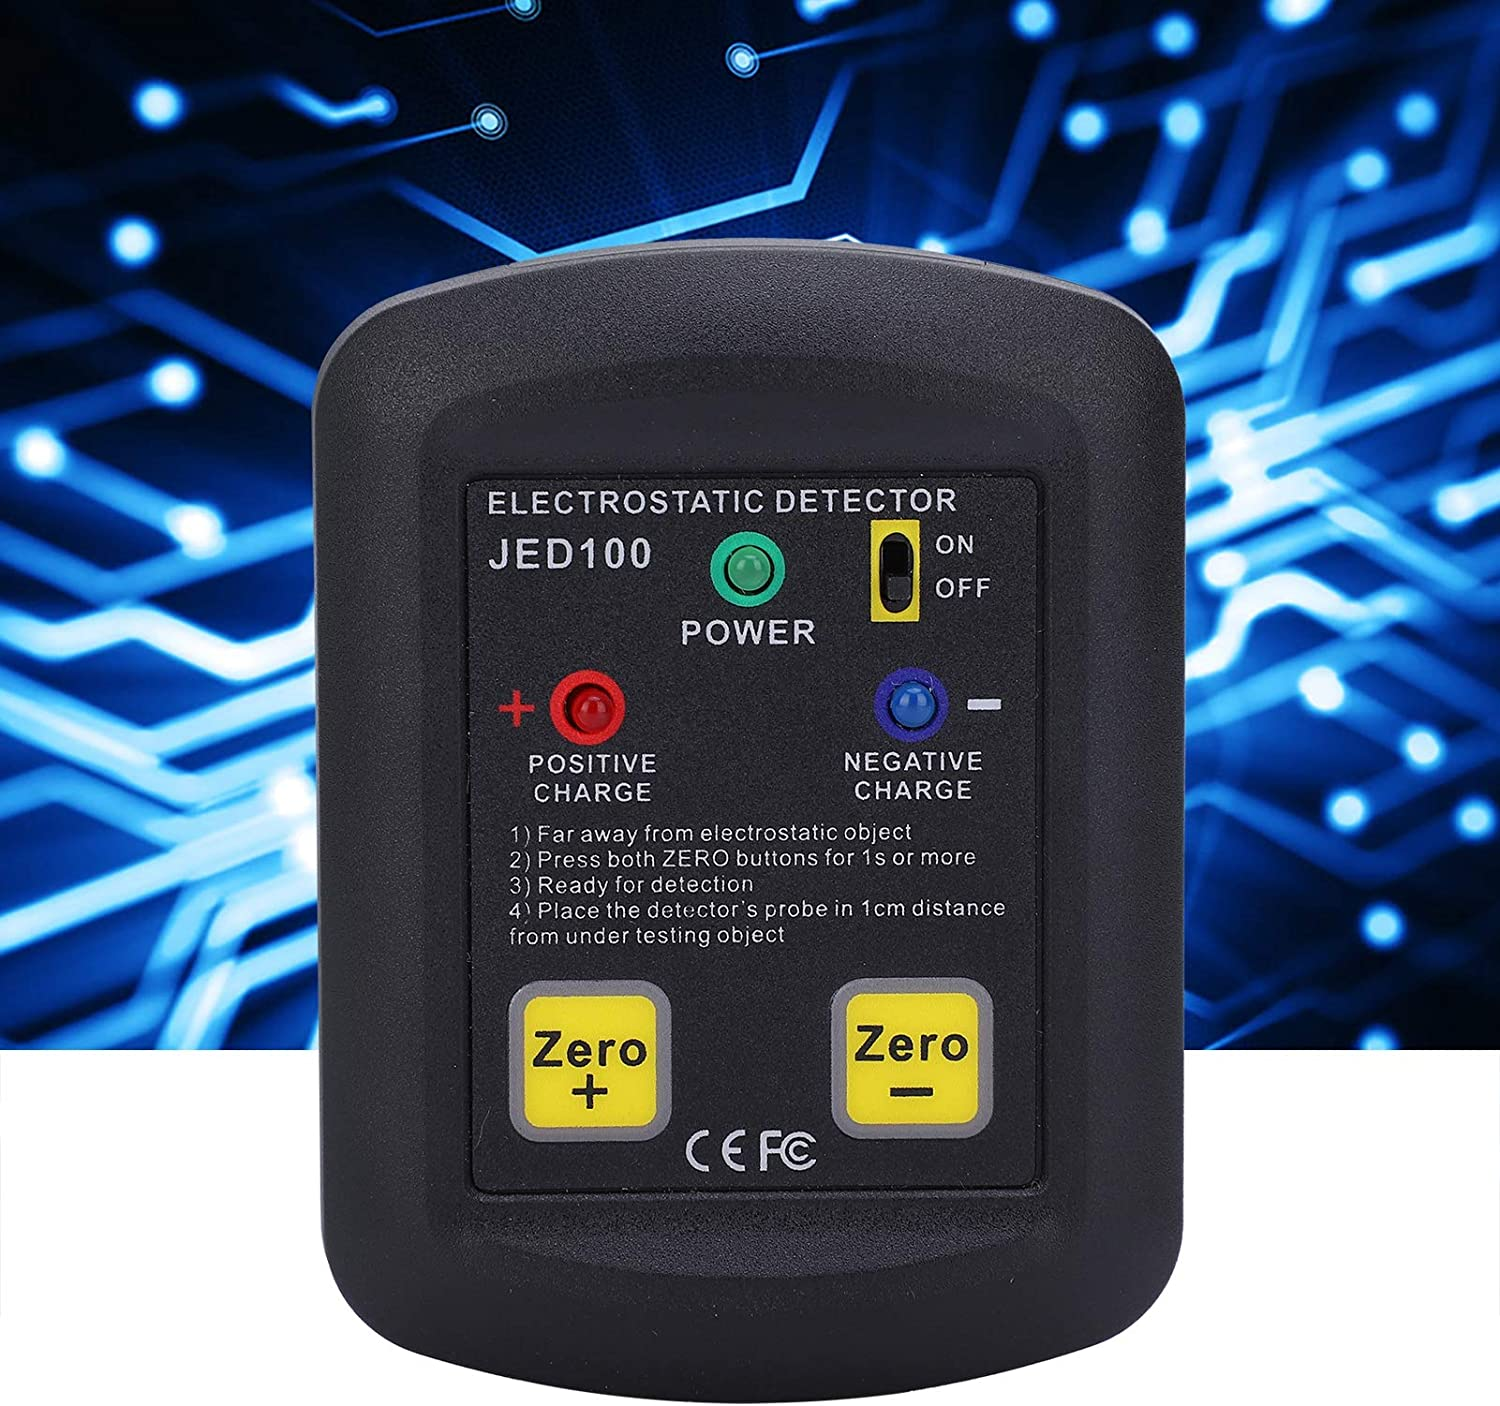 Electrostatic Discount is also underway Voltage Tester Electricity Meter Meas Max 59% OFF Field JED100